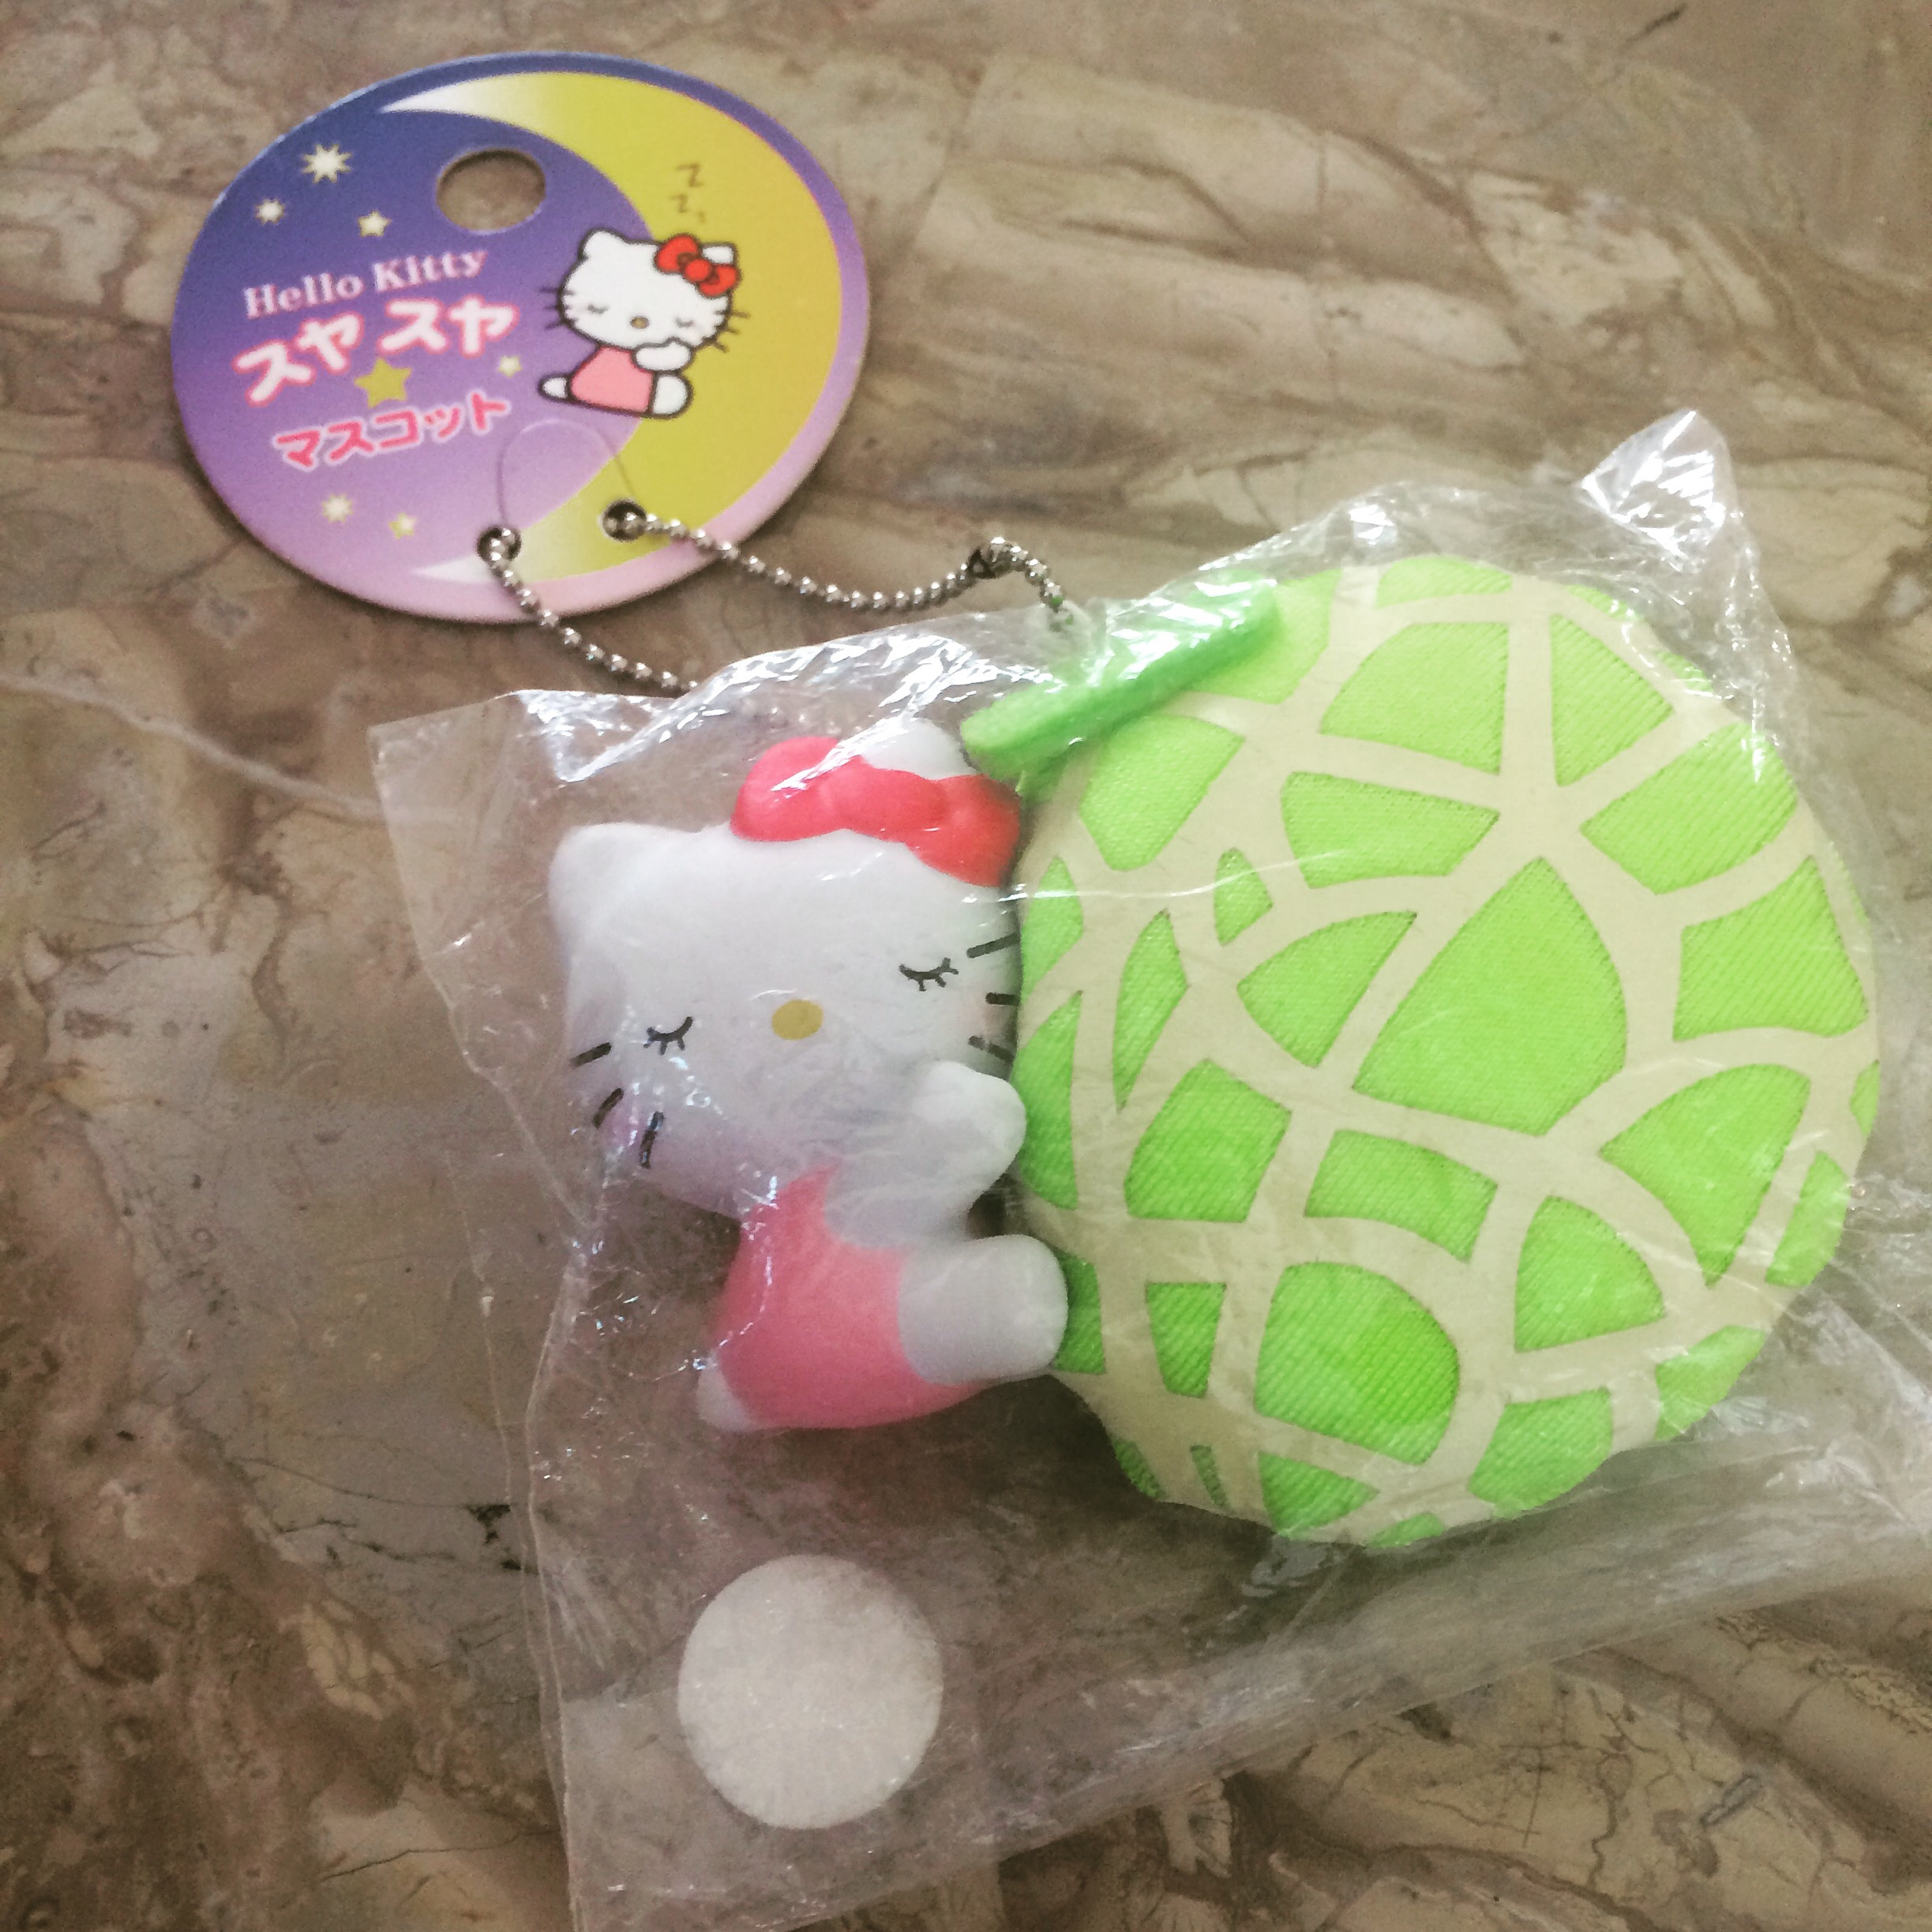 Squishy Rare : Rare hello kitty holding a melon plush squishy ? SuzyCupcake ? Online Store Powered by Storenvy